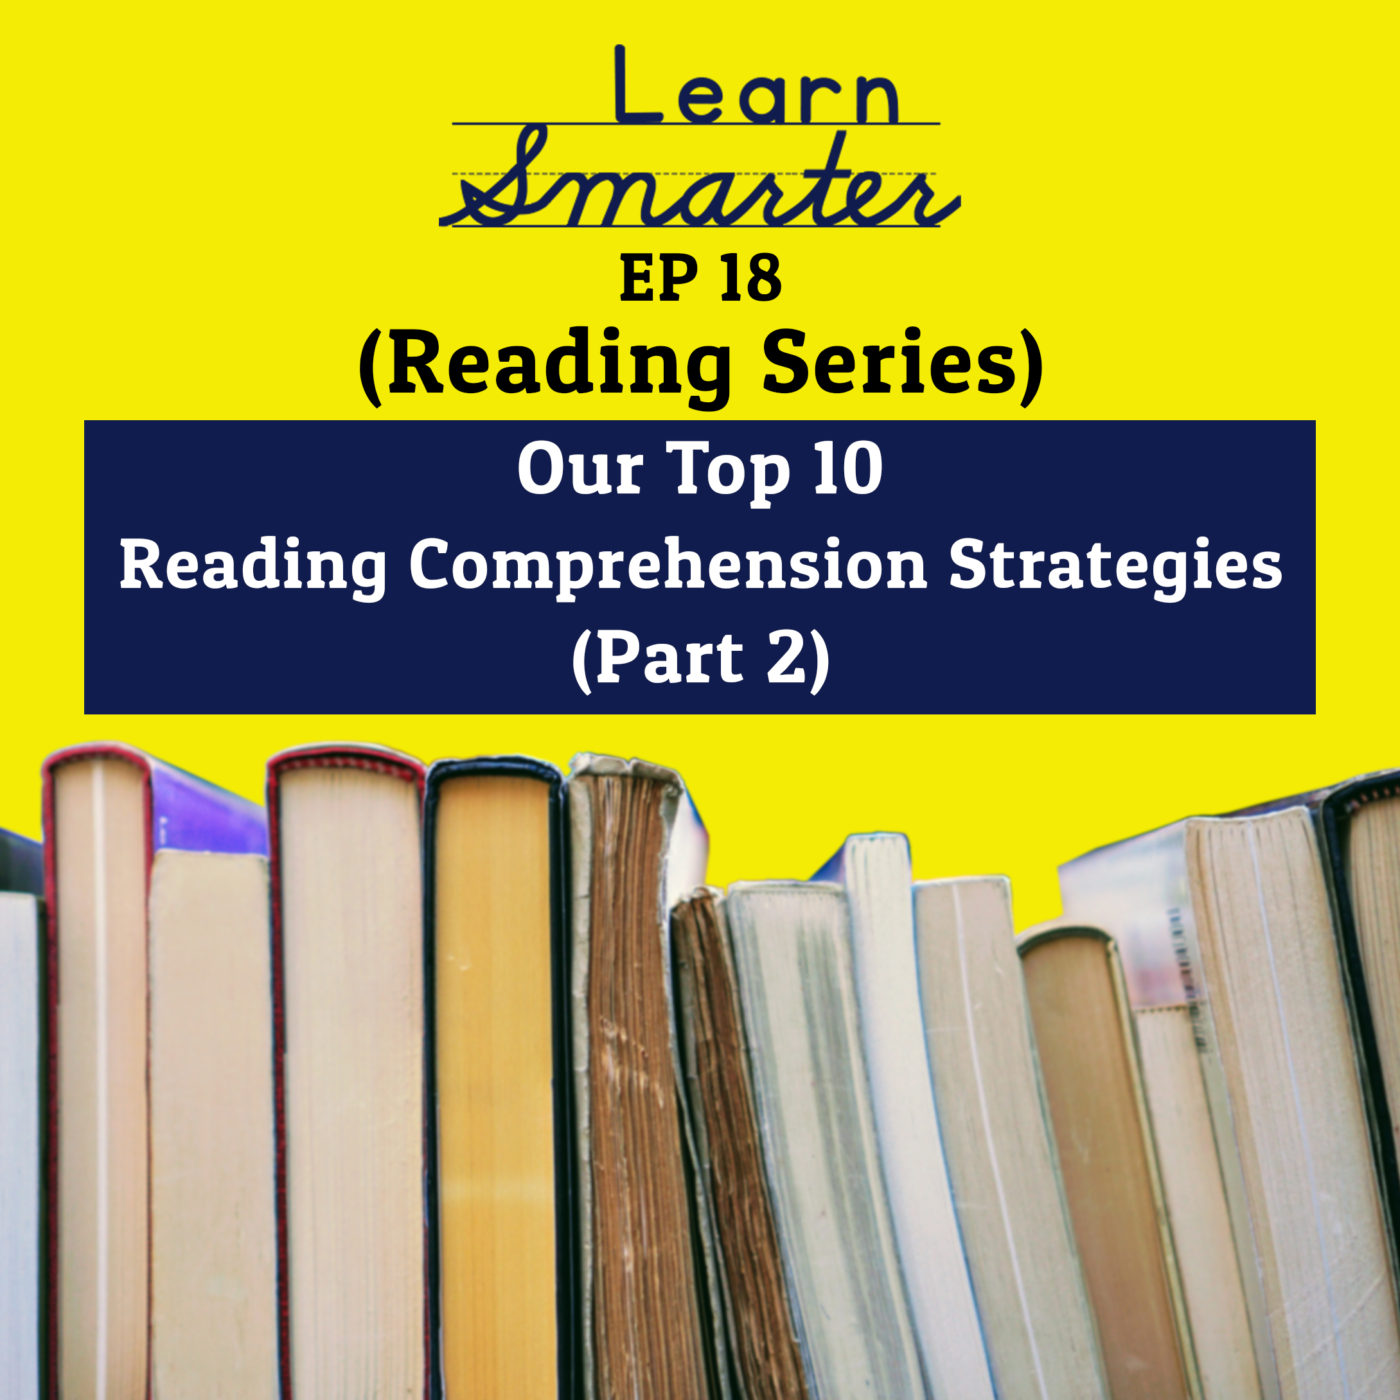 18: Our Top 10 Reading Comprehension Strategies (Part 2)